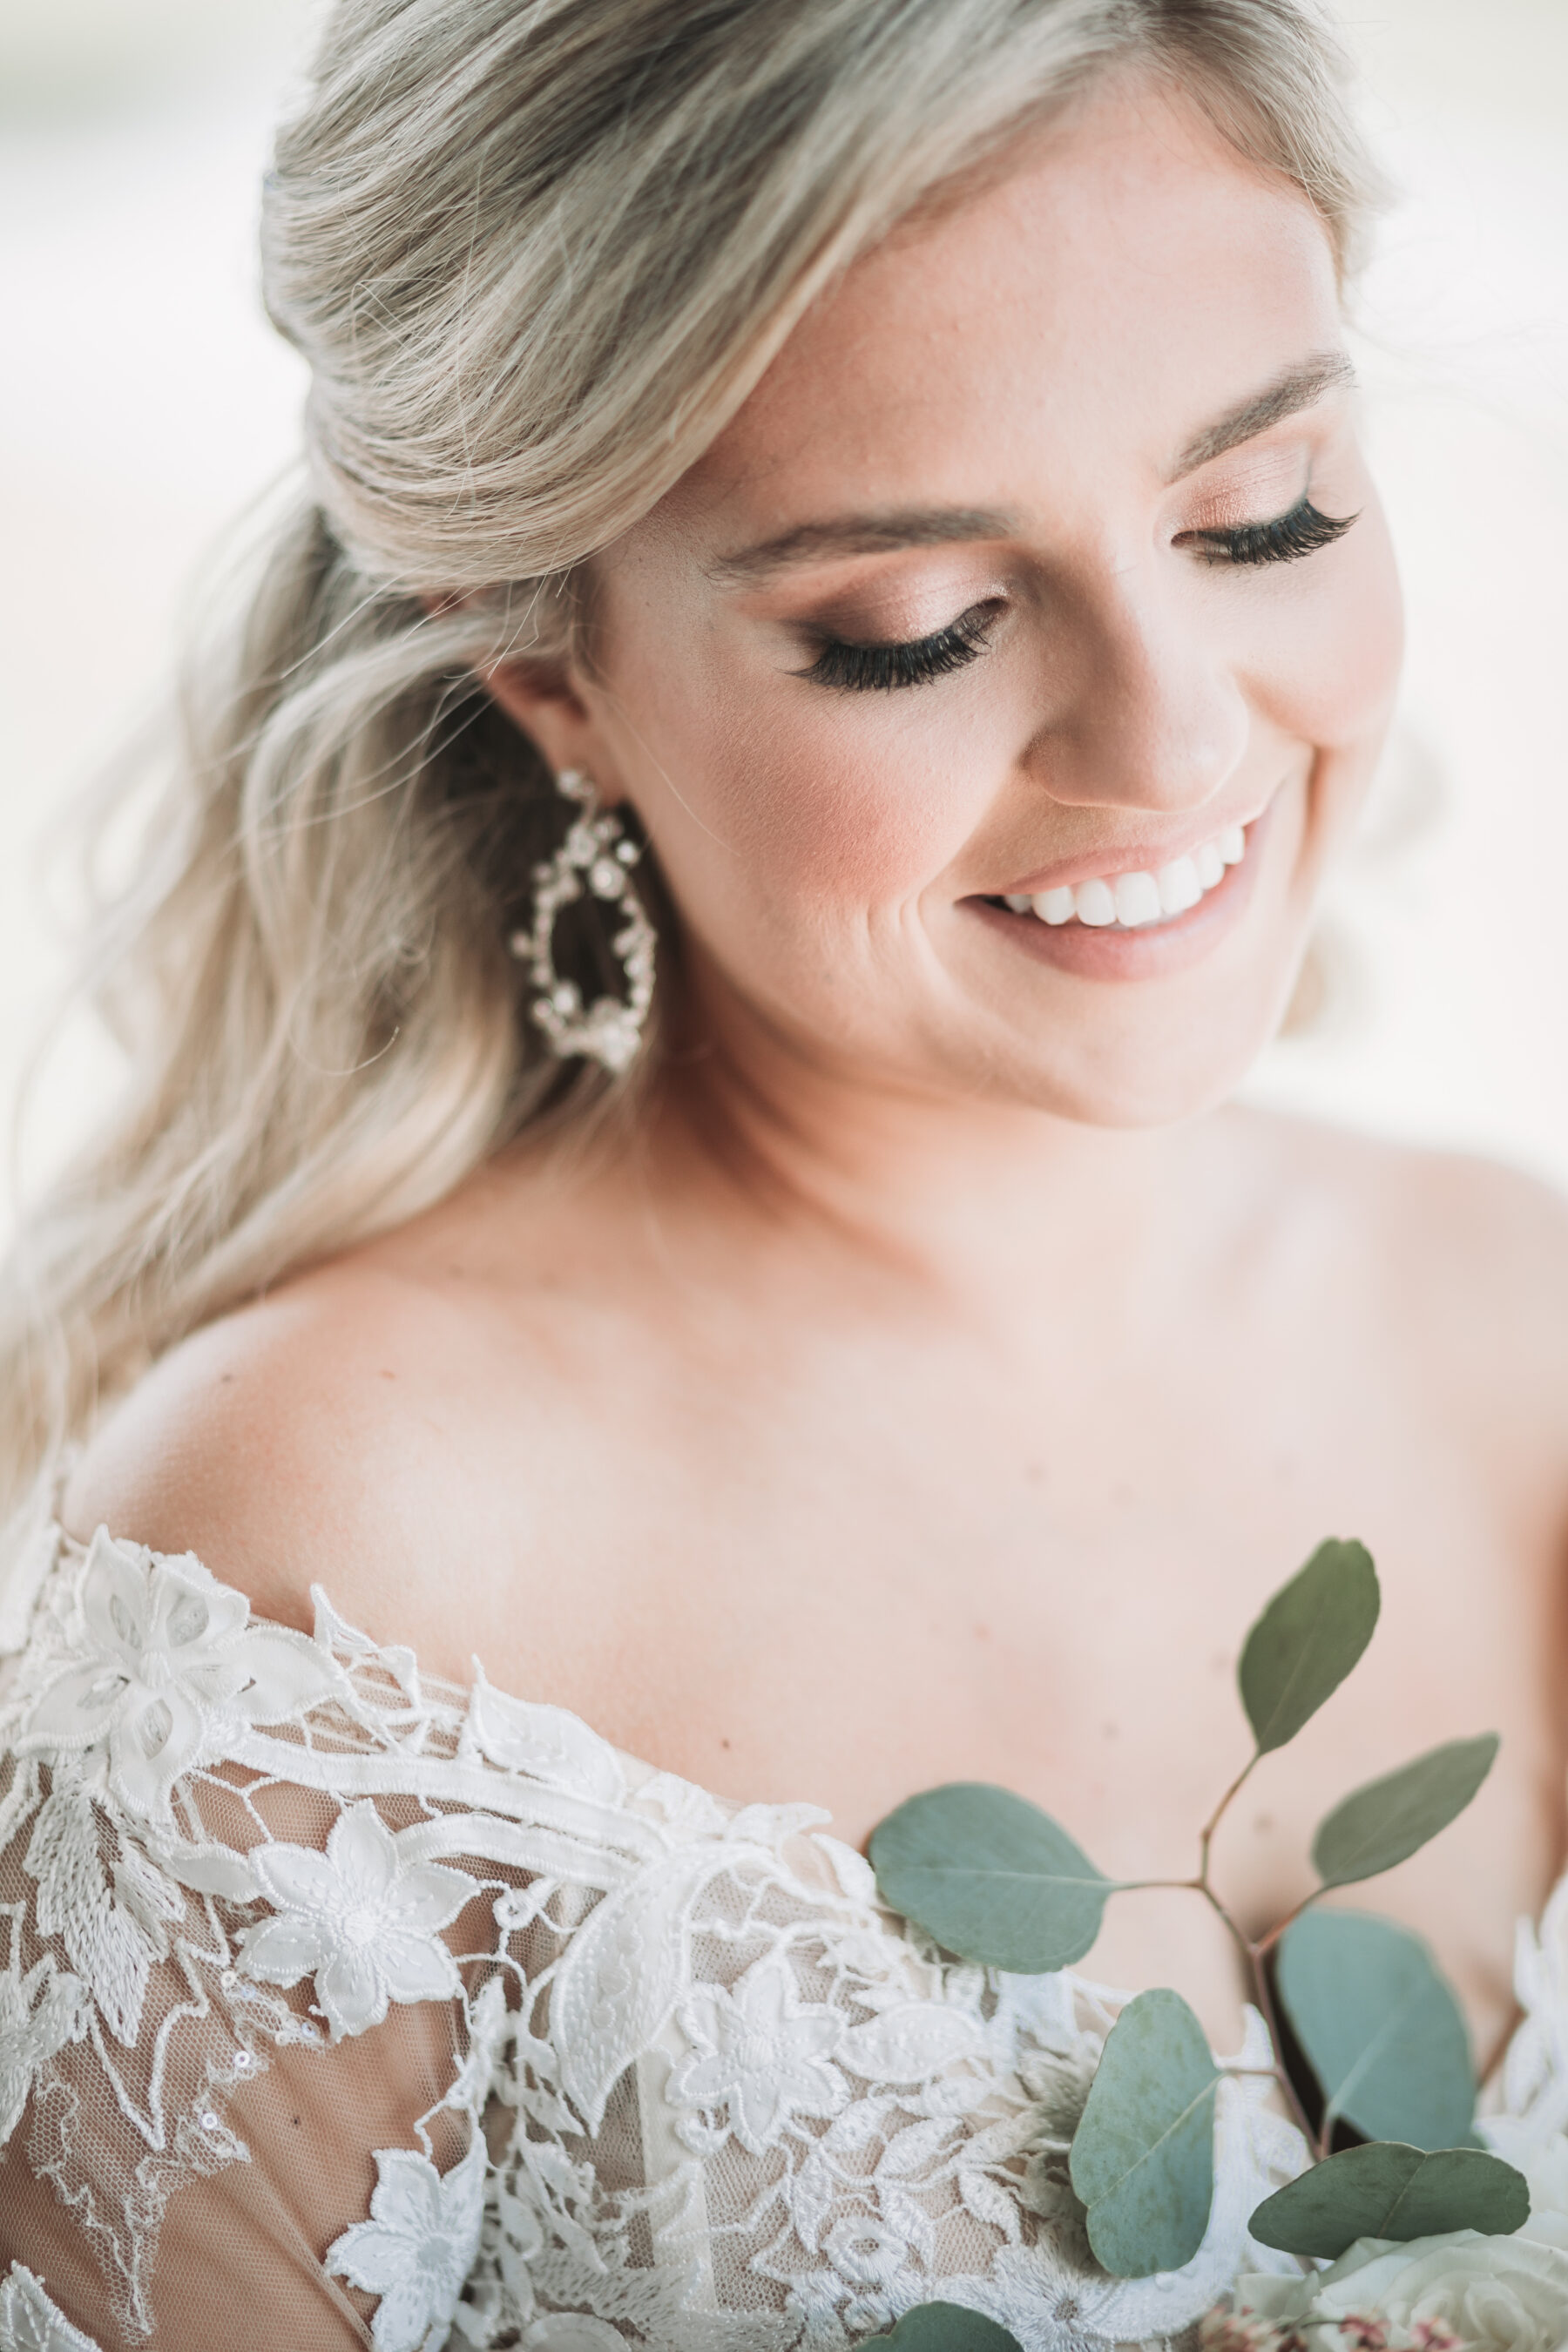 Bridal makeup: Romantic Country Club Soiree by Juniper Weddings featured on Nashville Bride Guide